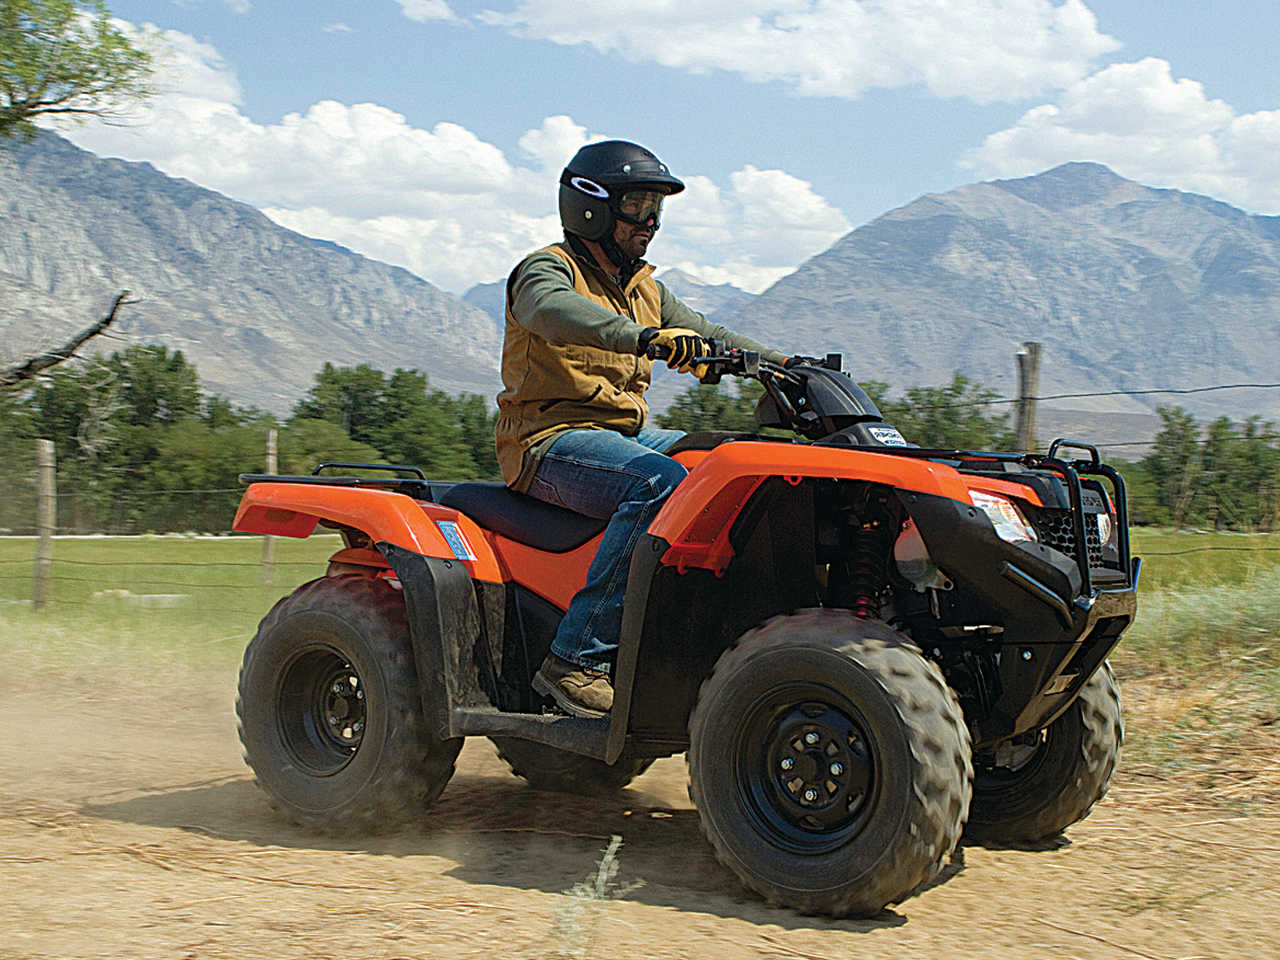 First Ride The 2014 Fourtrax Rancher Atv Illustrated 2013 Honda 420 Wiring Diagram 2014hondafourtrax Rancherorangefront Rightriding